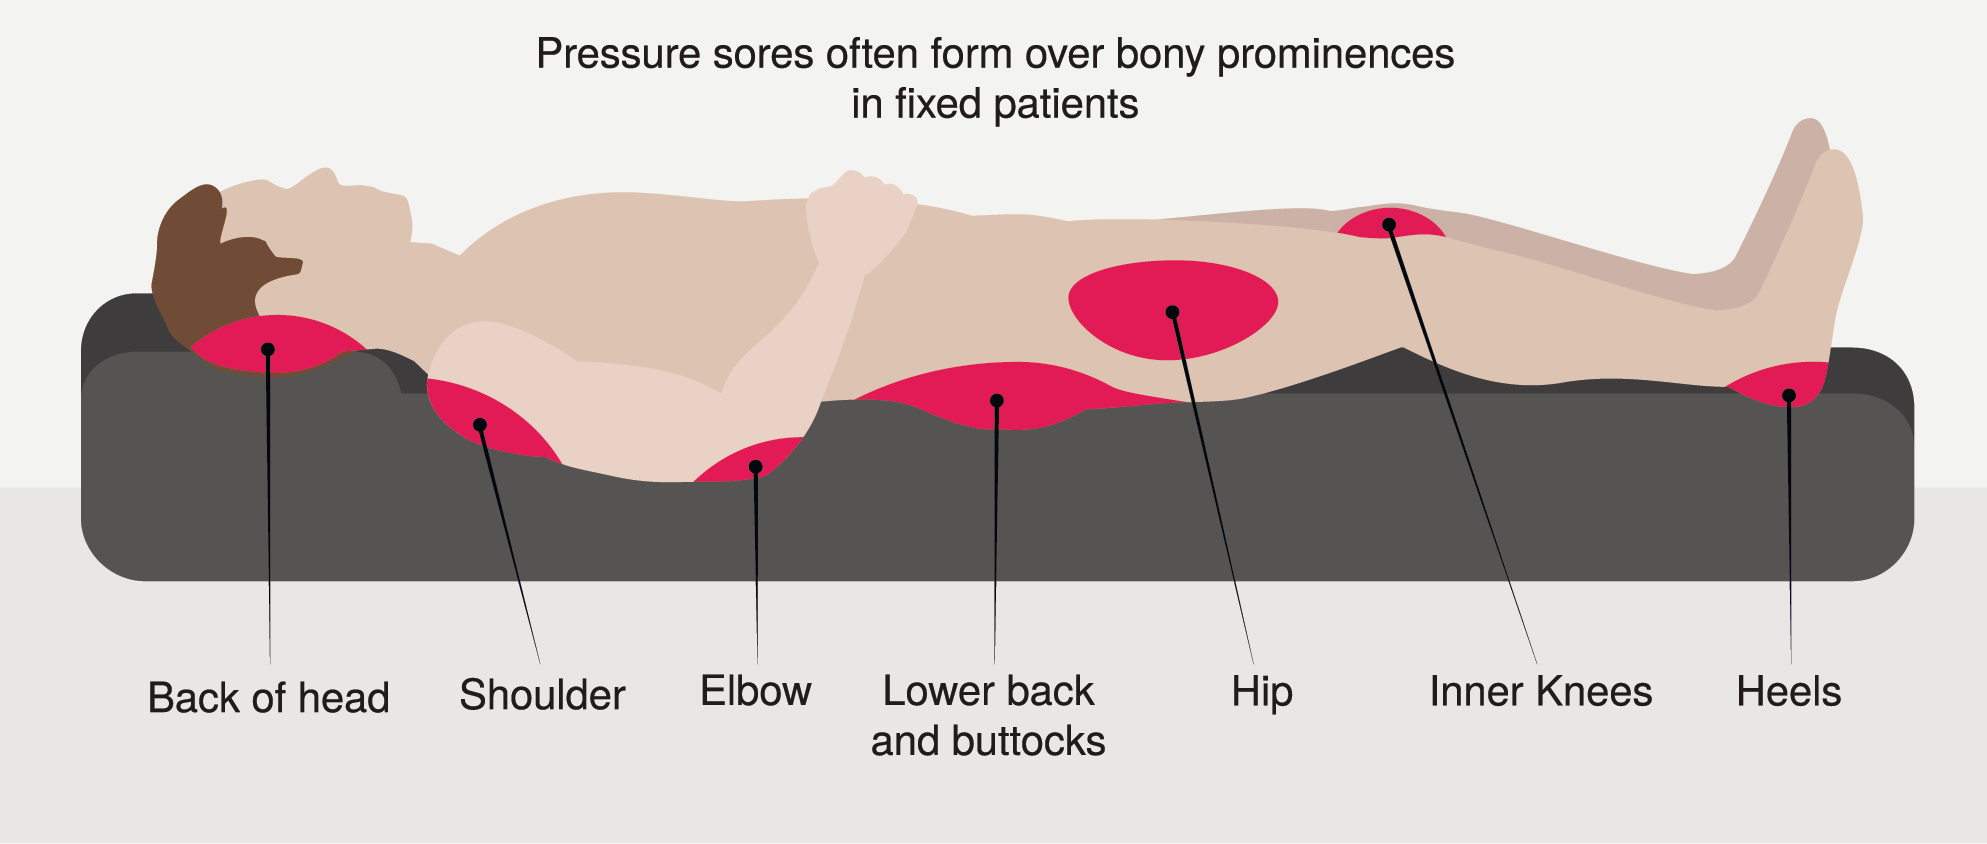 where pressure sores form on the body